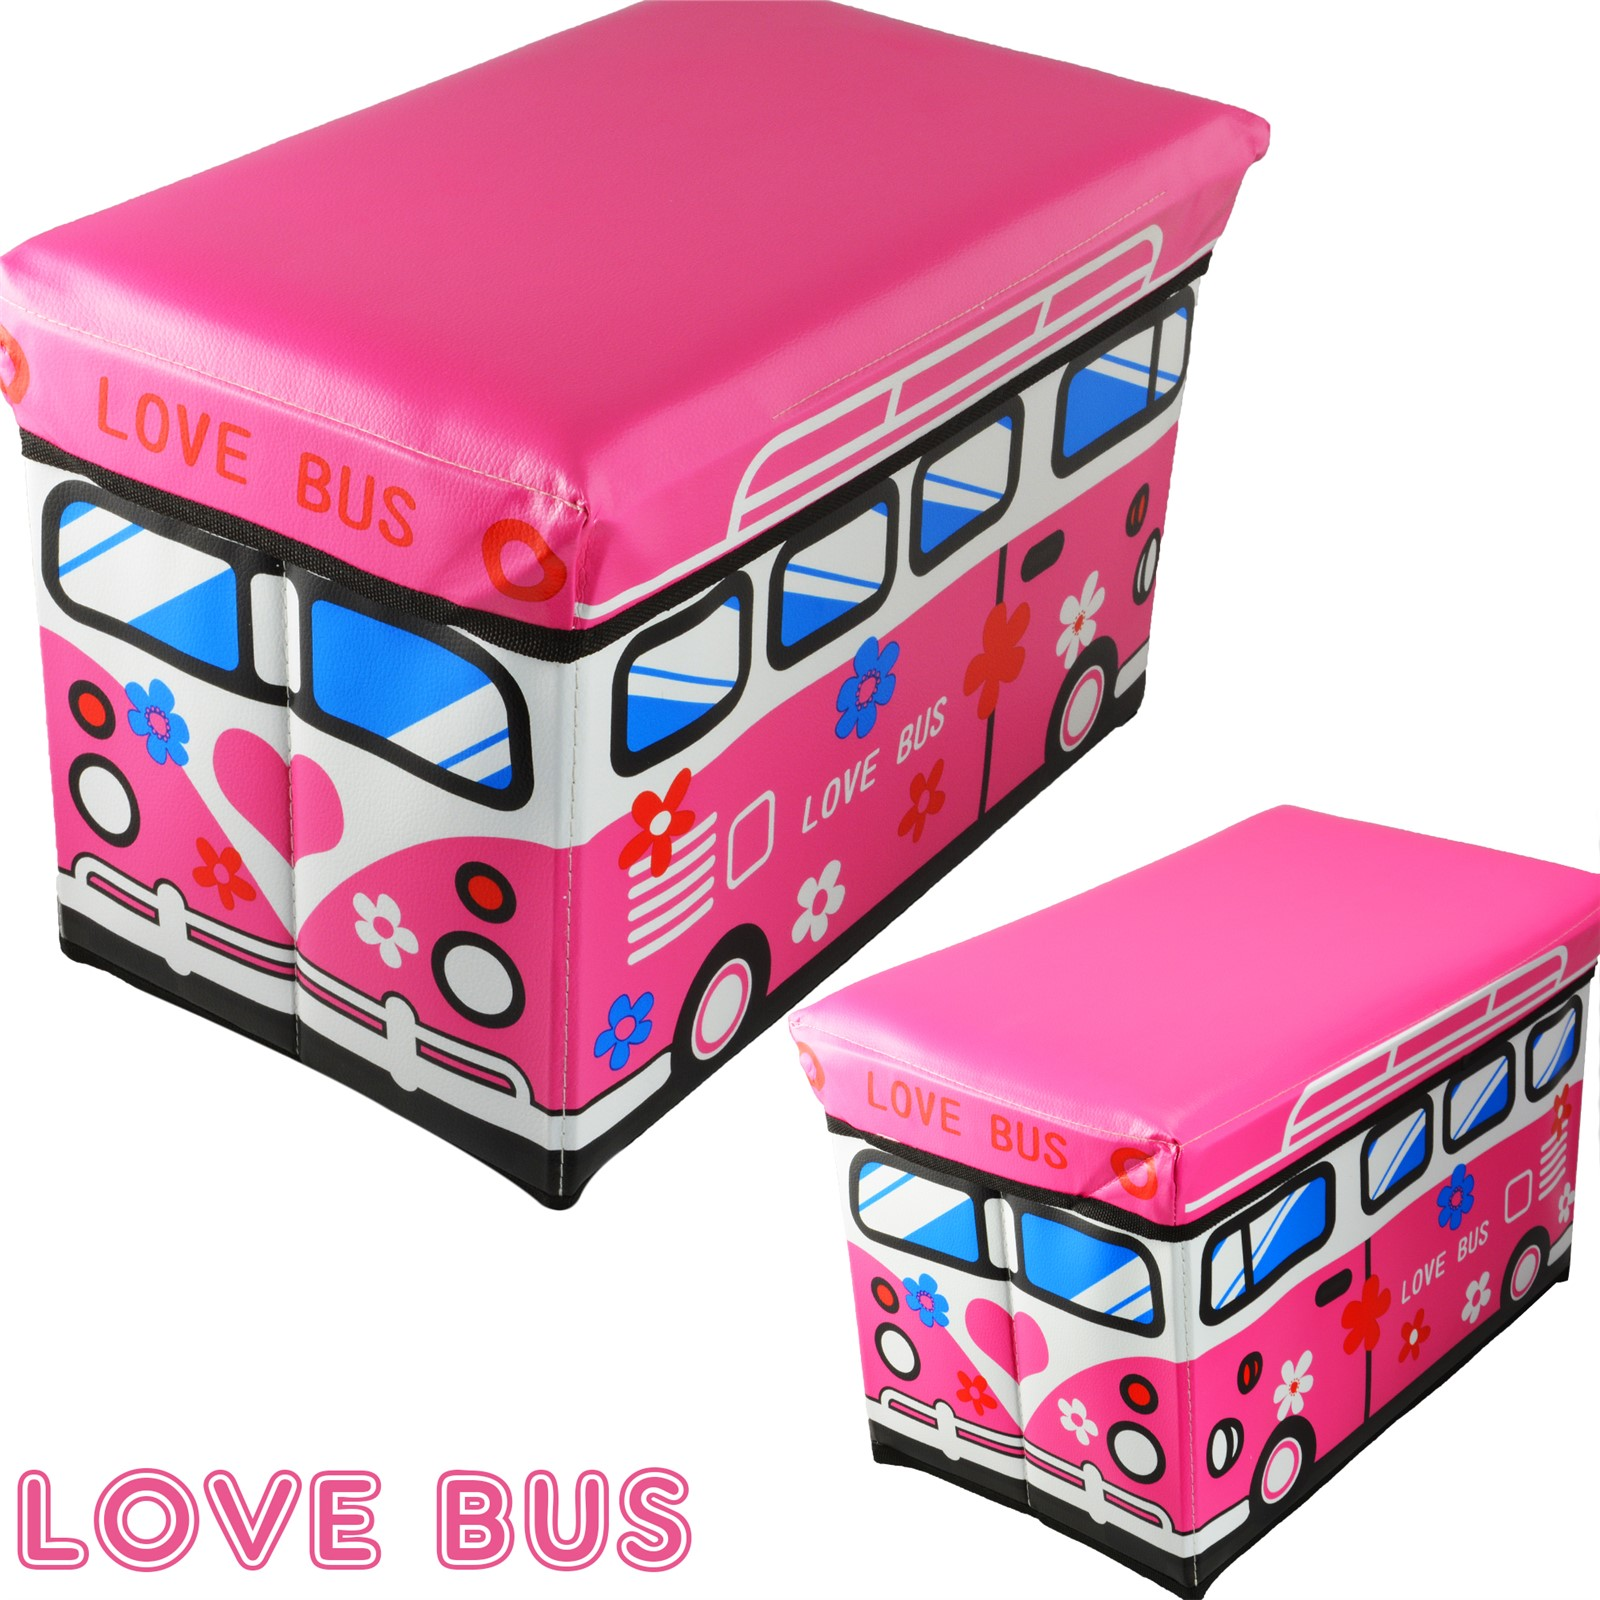 New Safari Bus Kids Folding Storage Bin Toy Box Clothes: CHILDREN POP UP FOLDING STORAGE BOX SEAT KIDS TOY CHEST